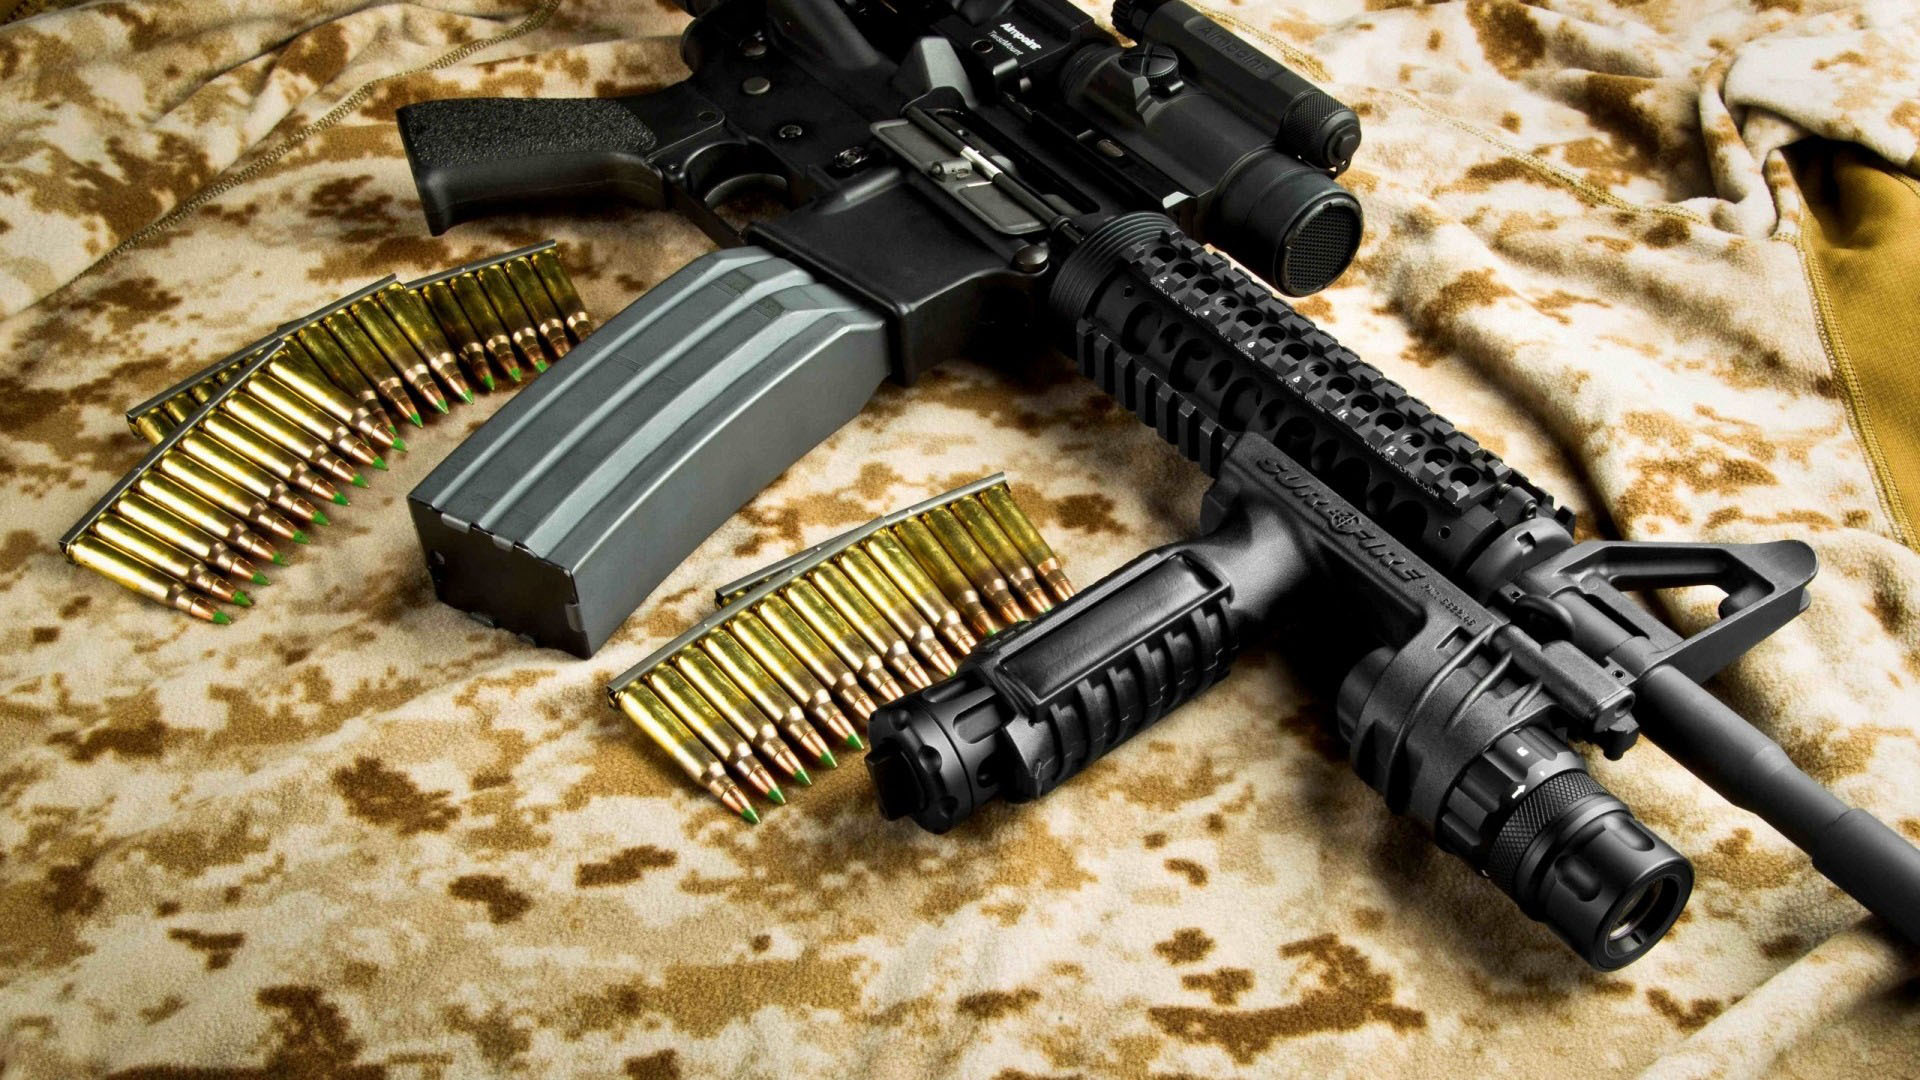 M16 High Definition Wallpapers